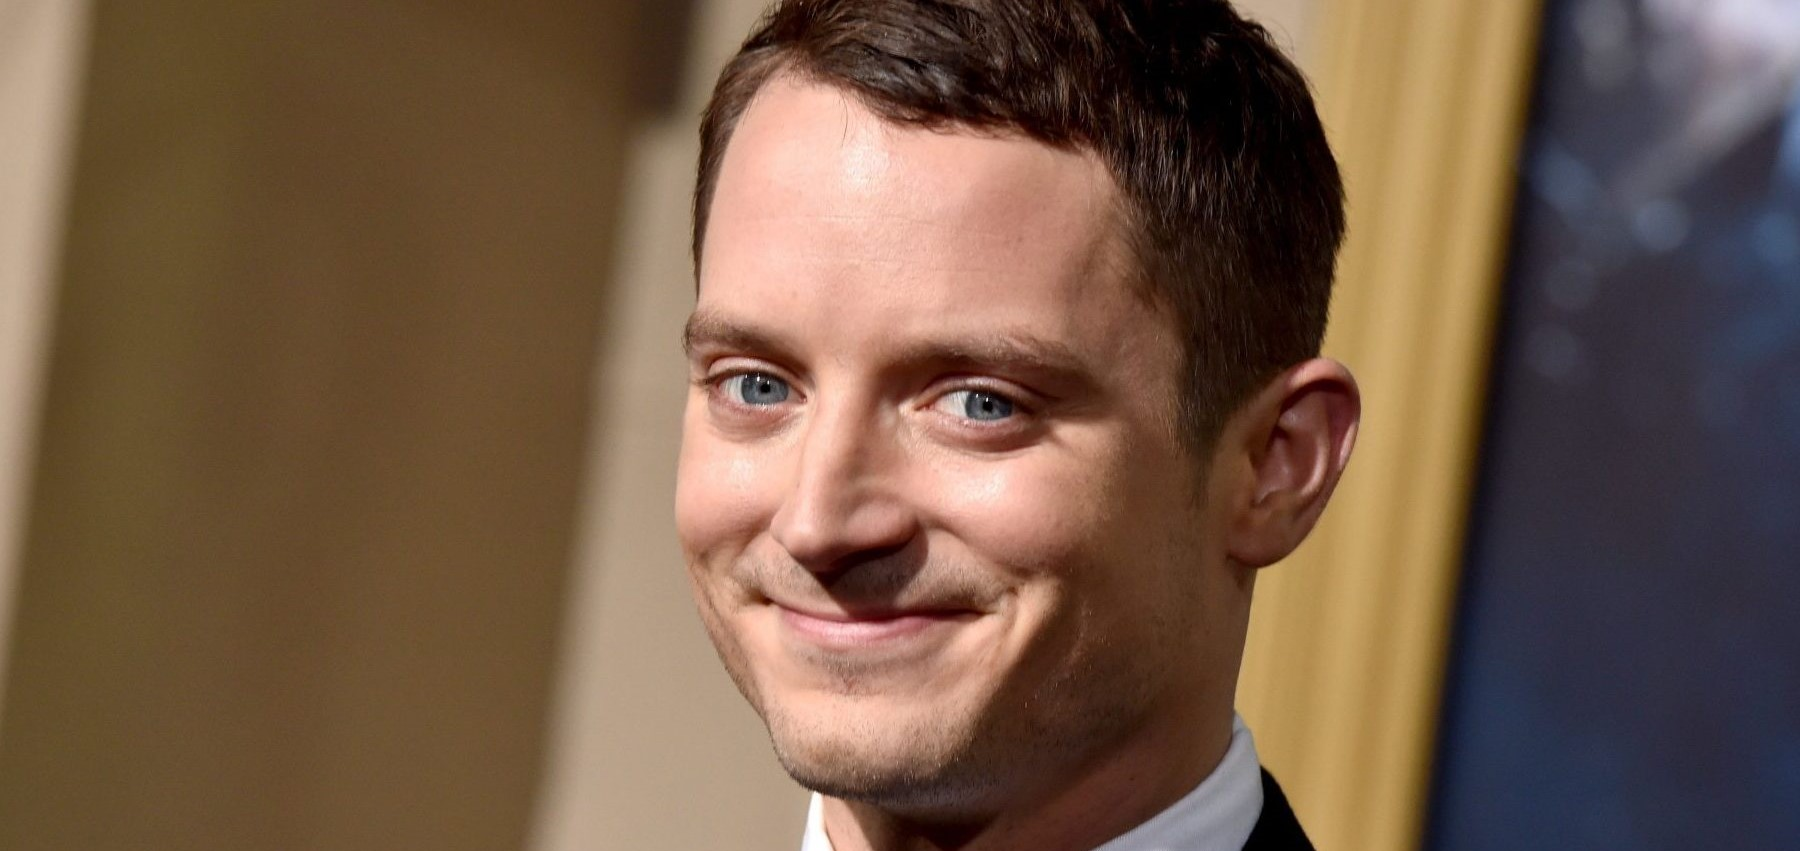 Elijah Wood - Interprète de Frodo